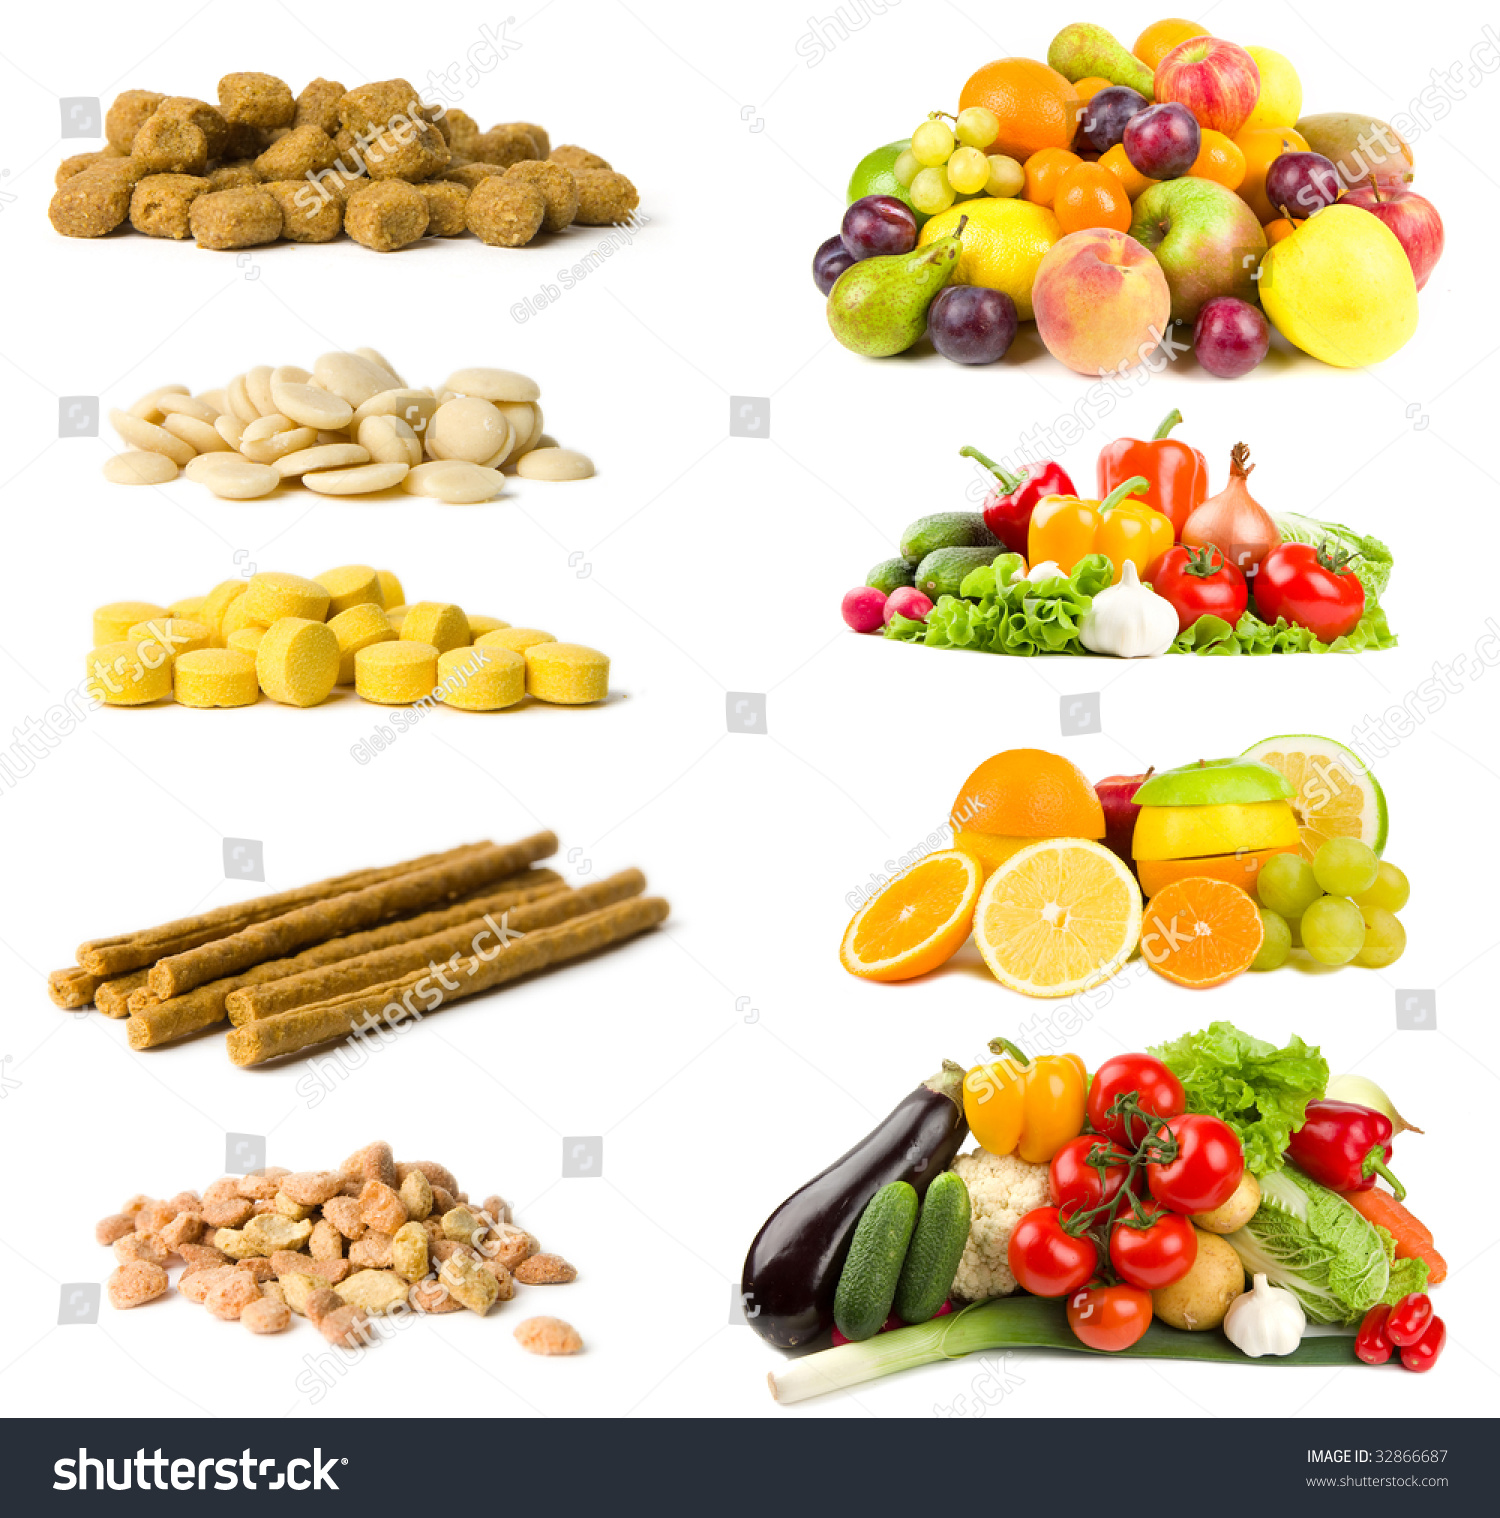 Healthy And Unhealthy Foods Selections Isolated On White Stock Photo Shutterstock